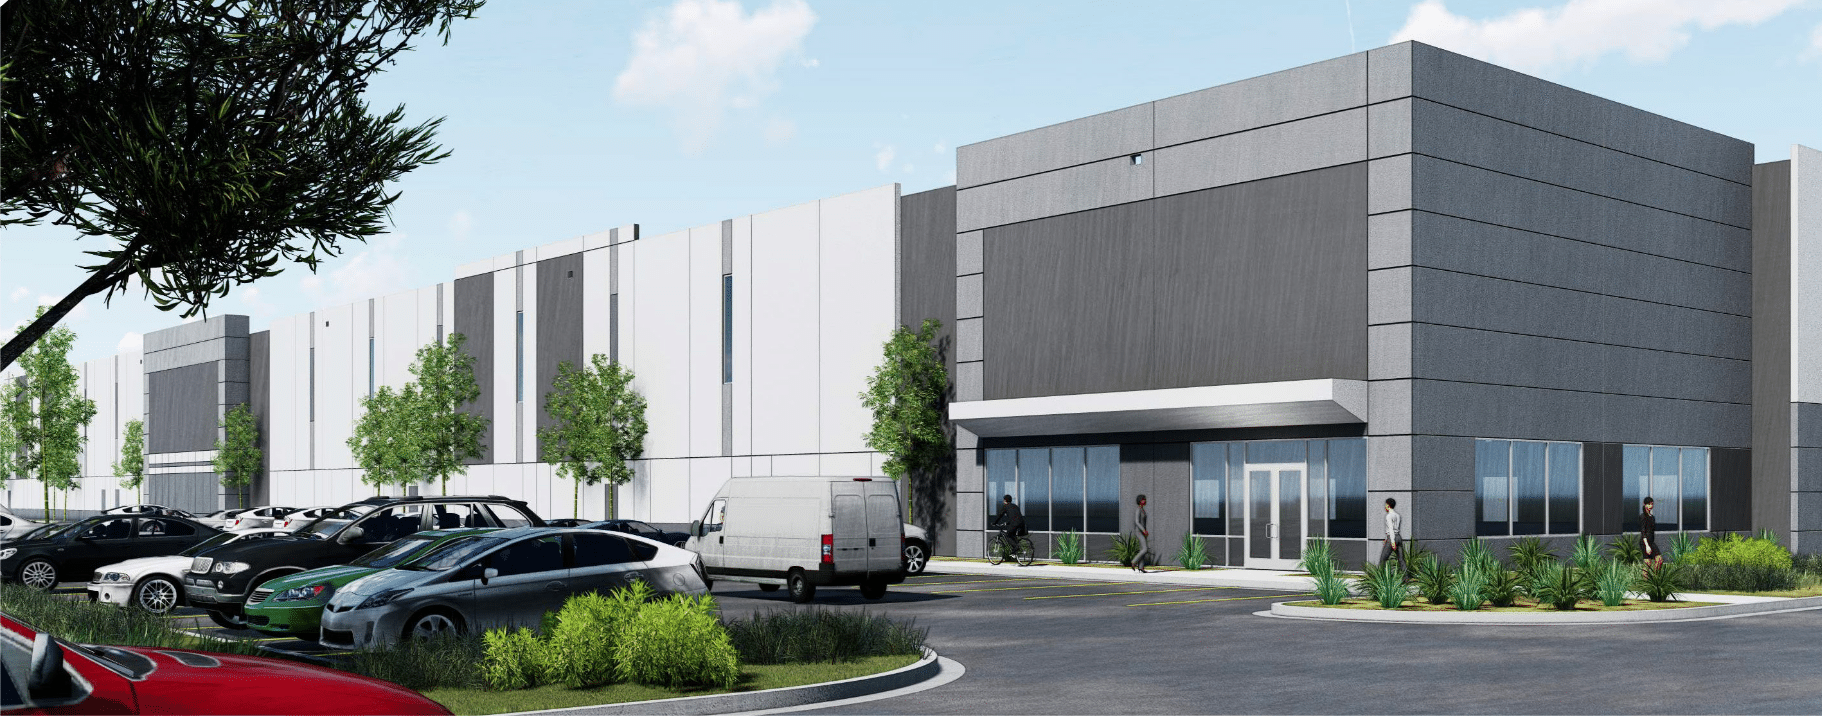 Rendering of Trade @ 2534 development in Johnstown, Colo.